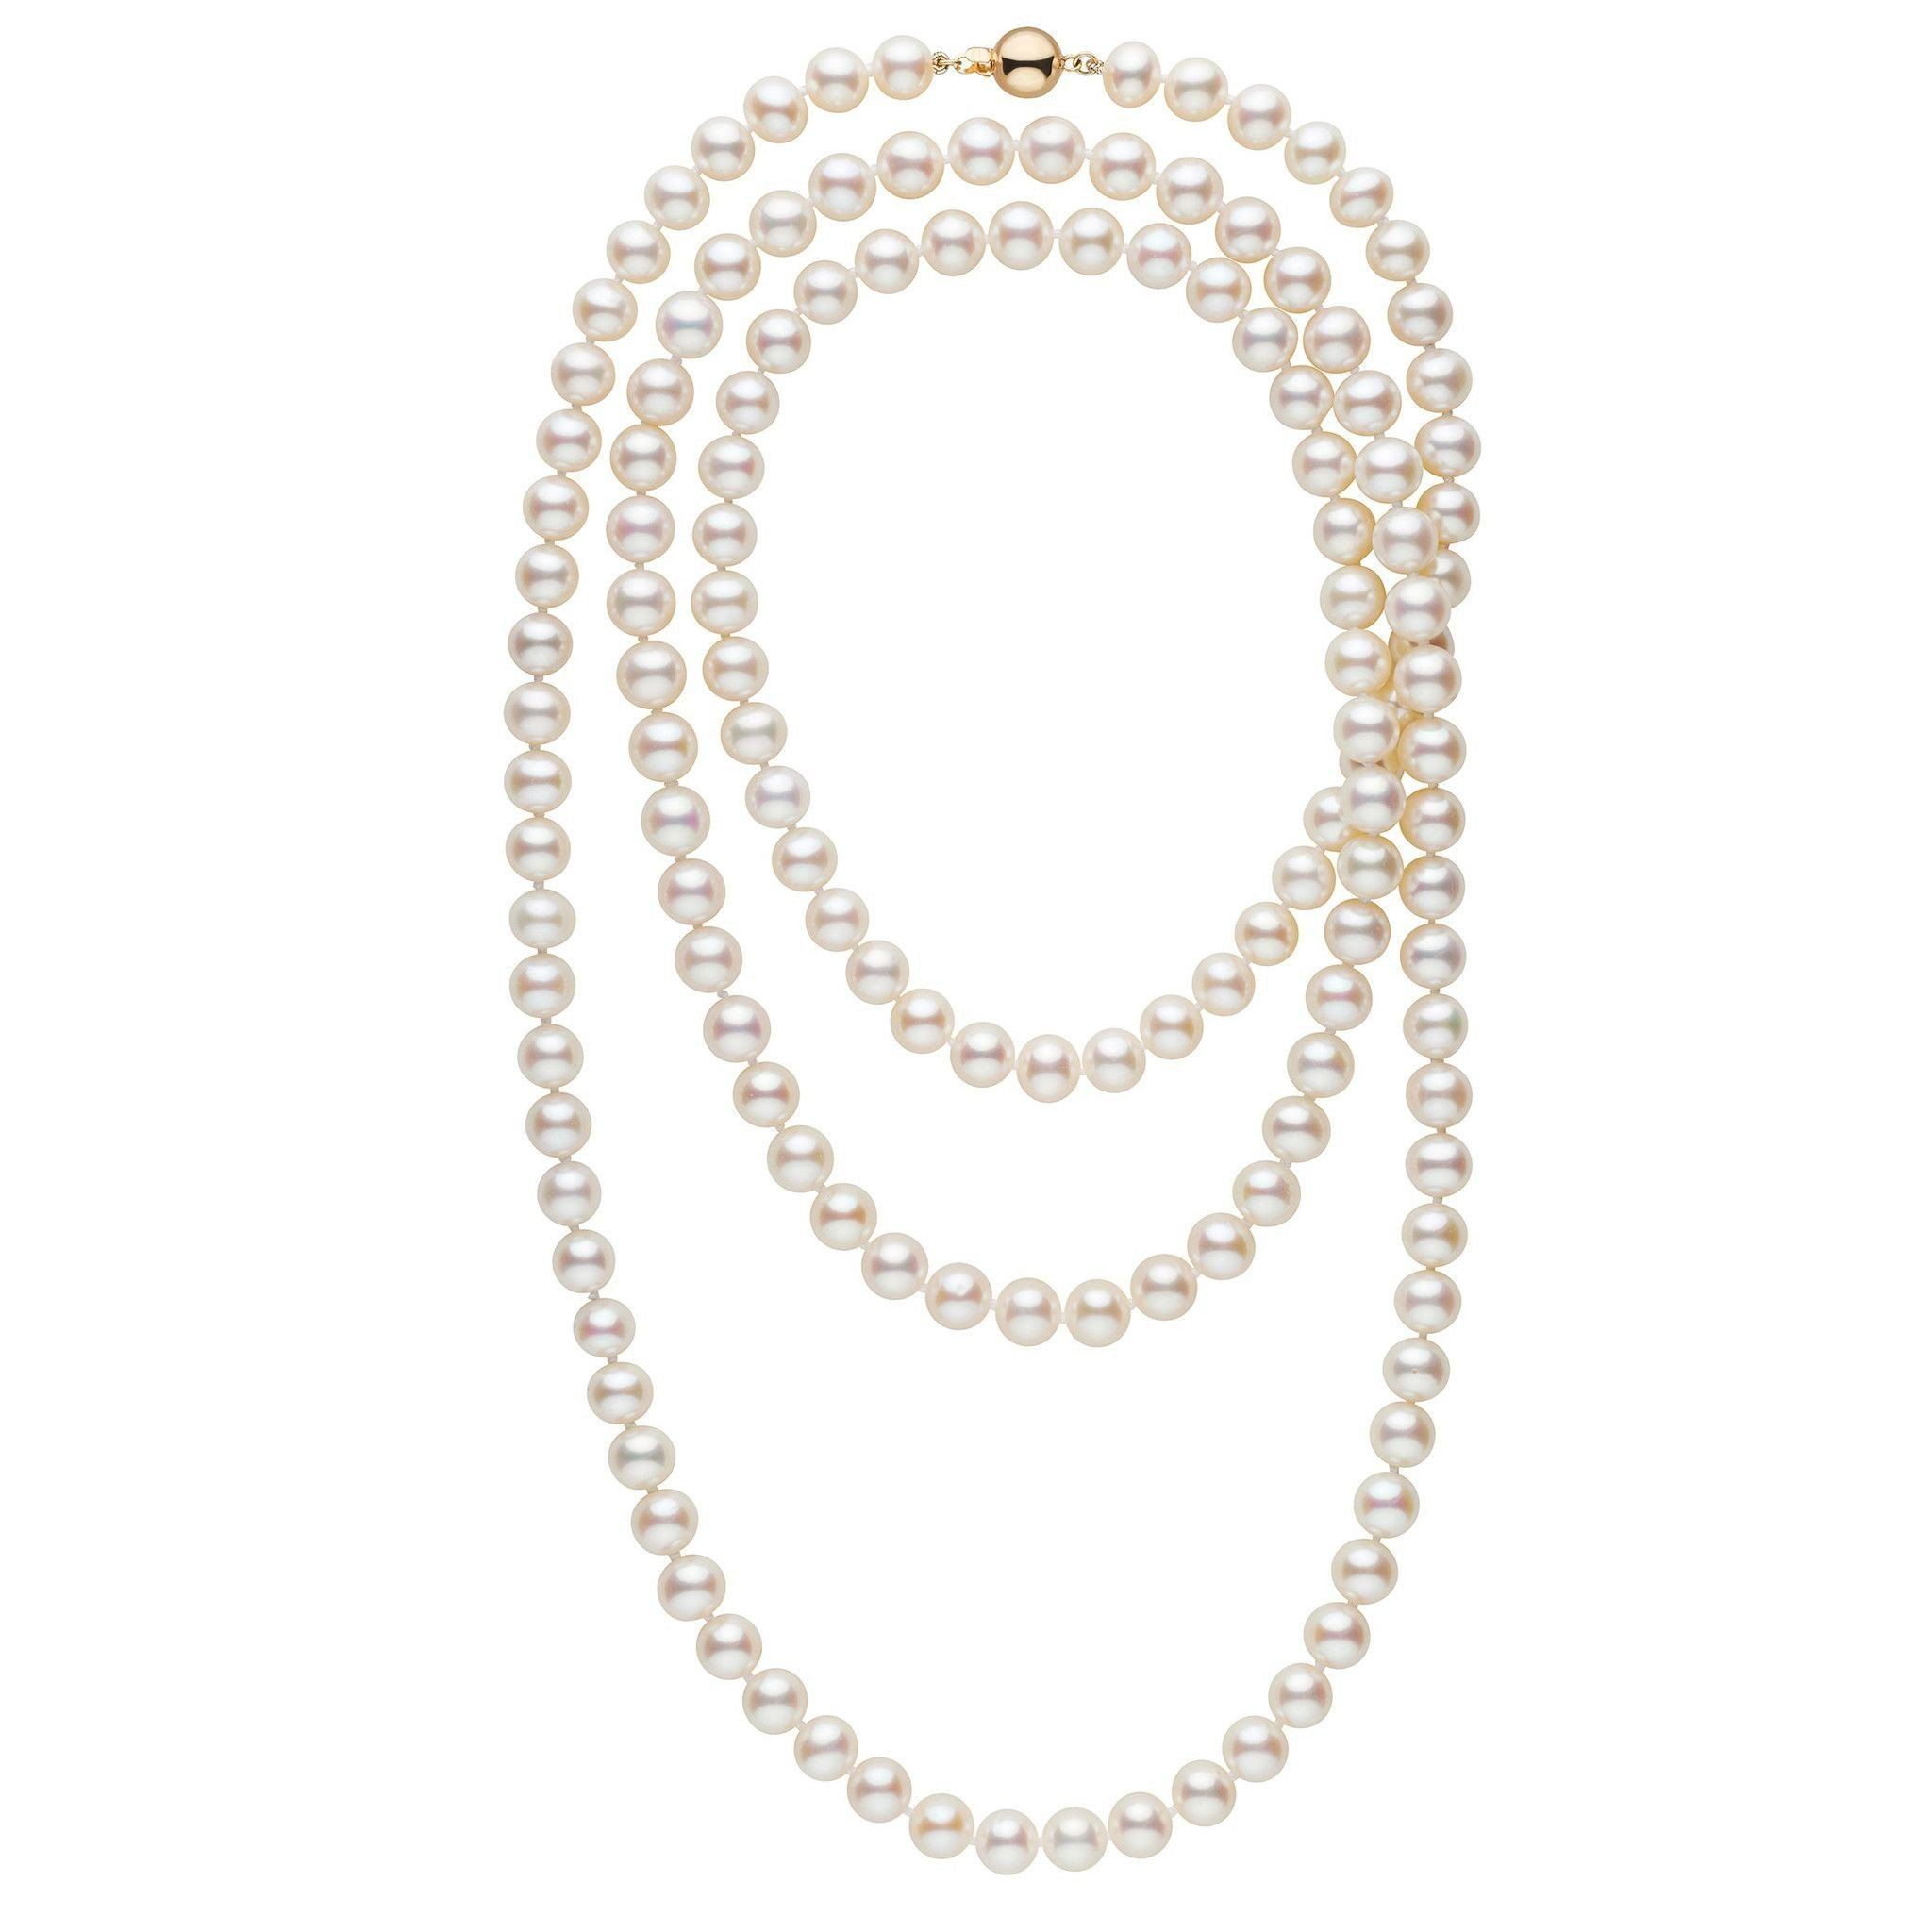 52-inch 8.5-9.5 mm AAA White Freshwater Pearl Necklace